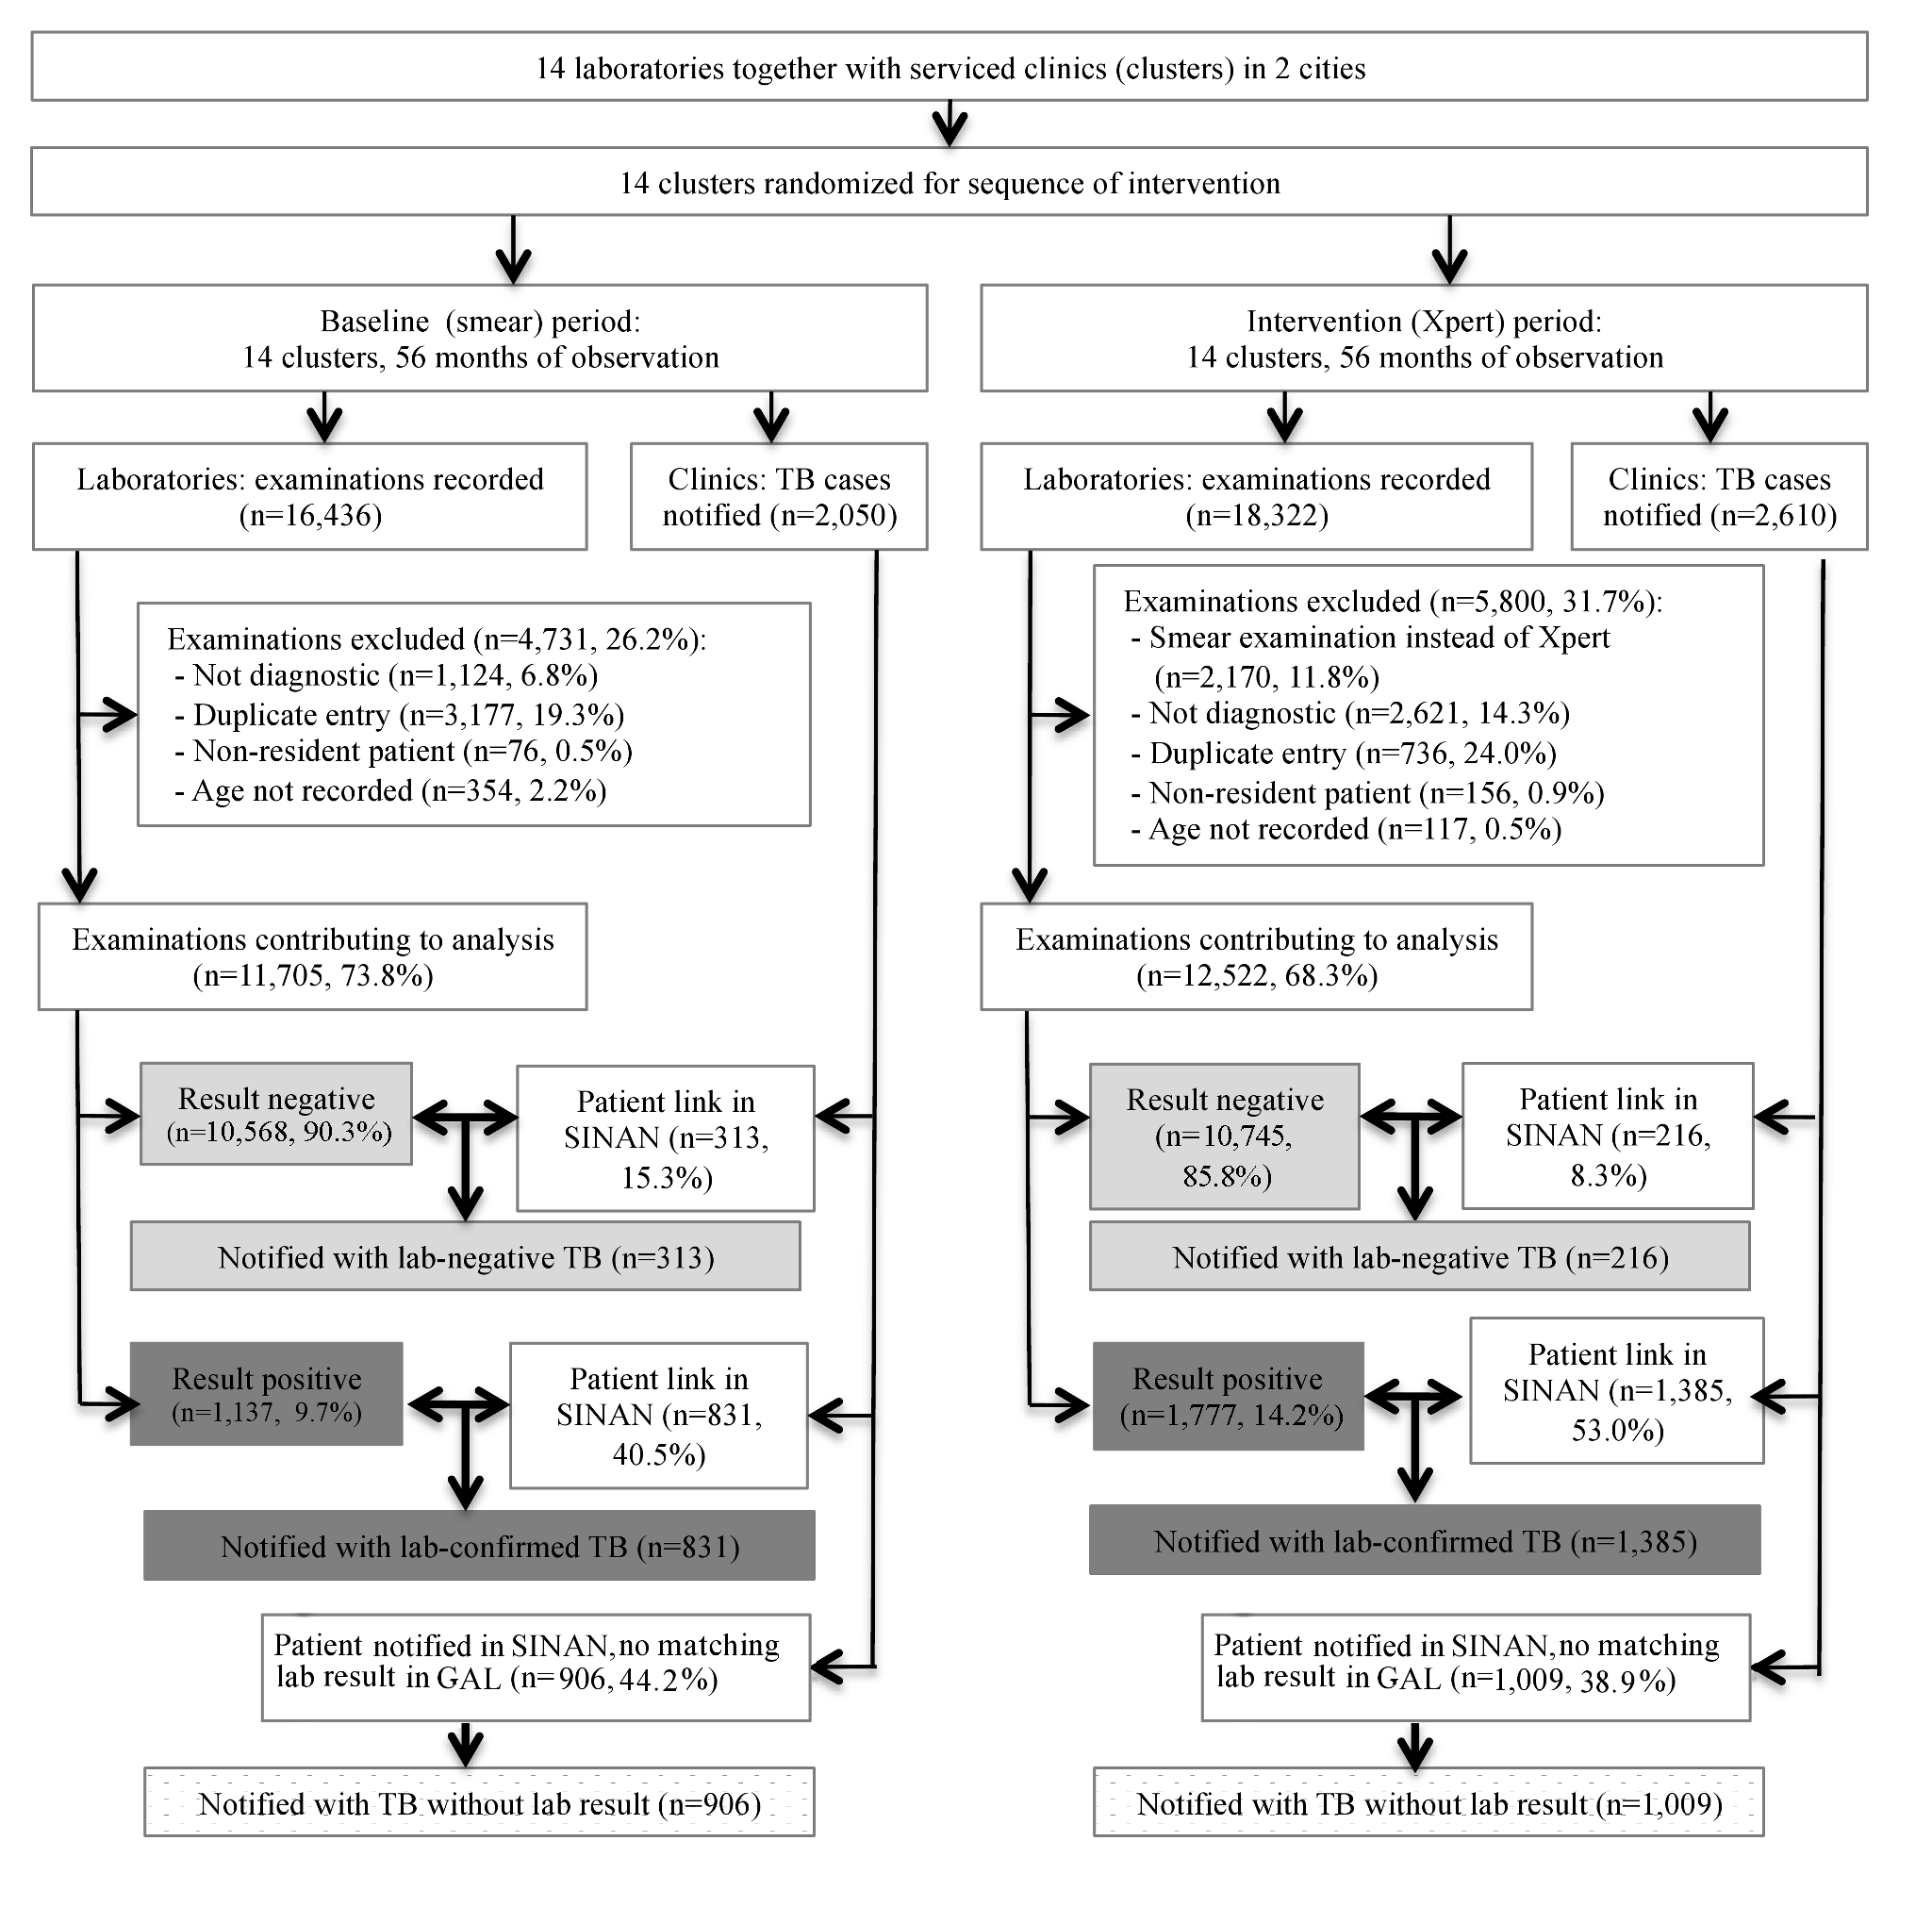 Flowchart showing study inclusion in baseline (smear examination) and intervention (Xpert MTB/RIF) arms.